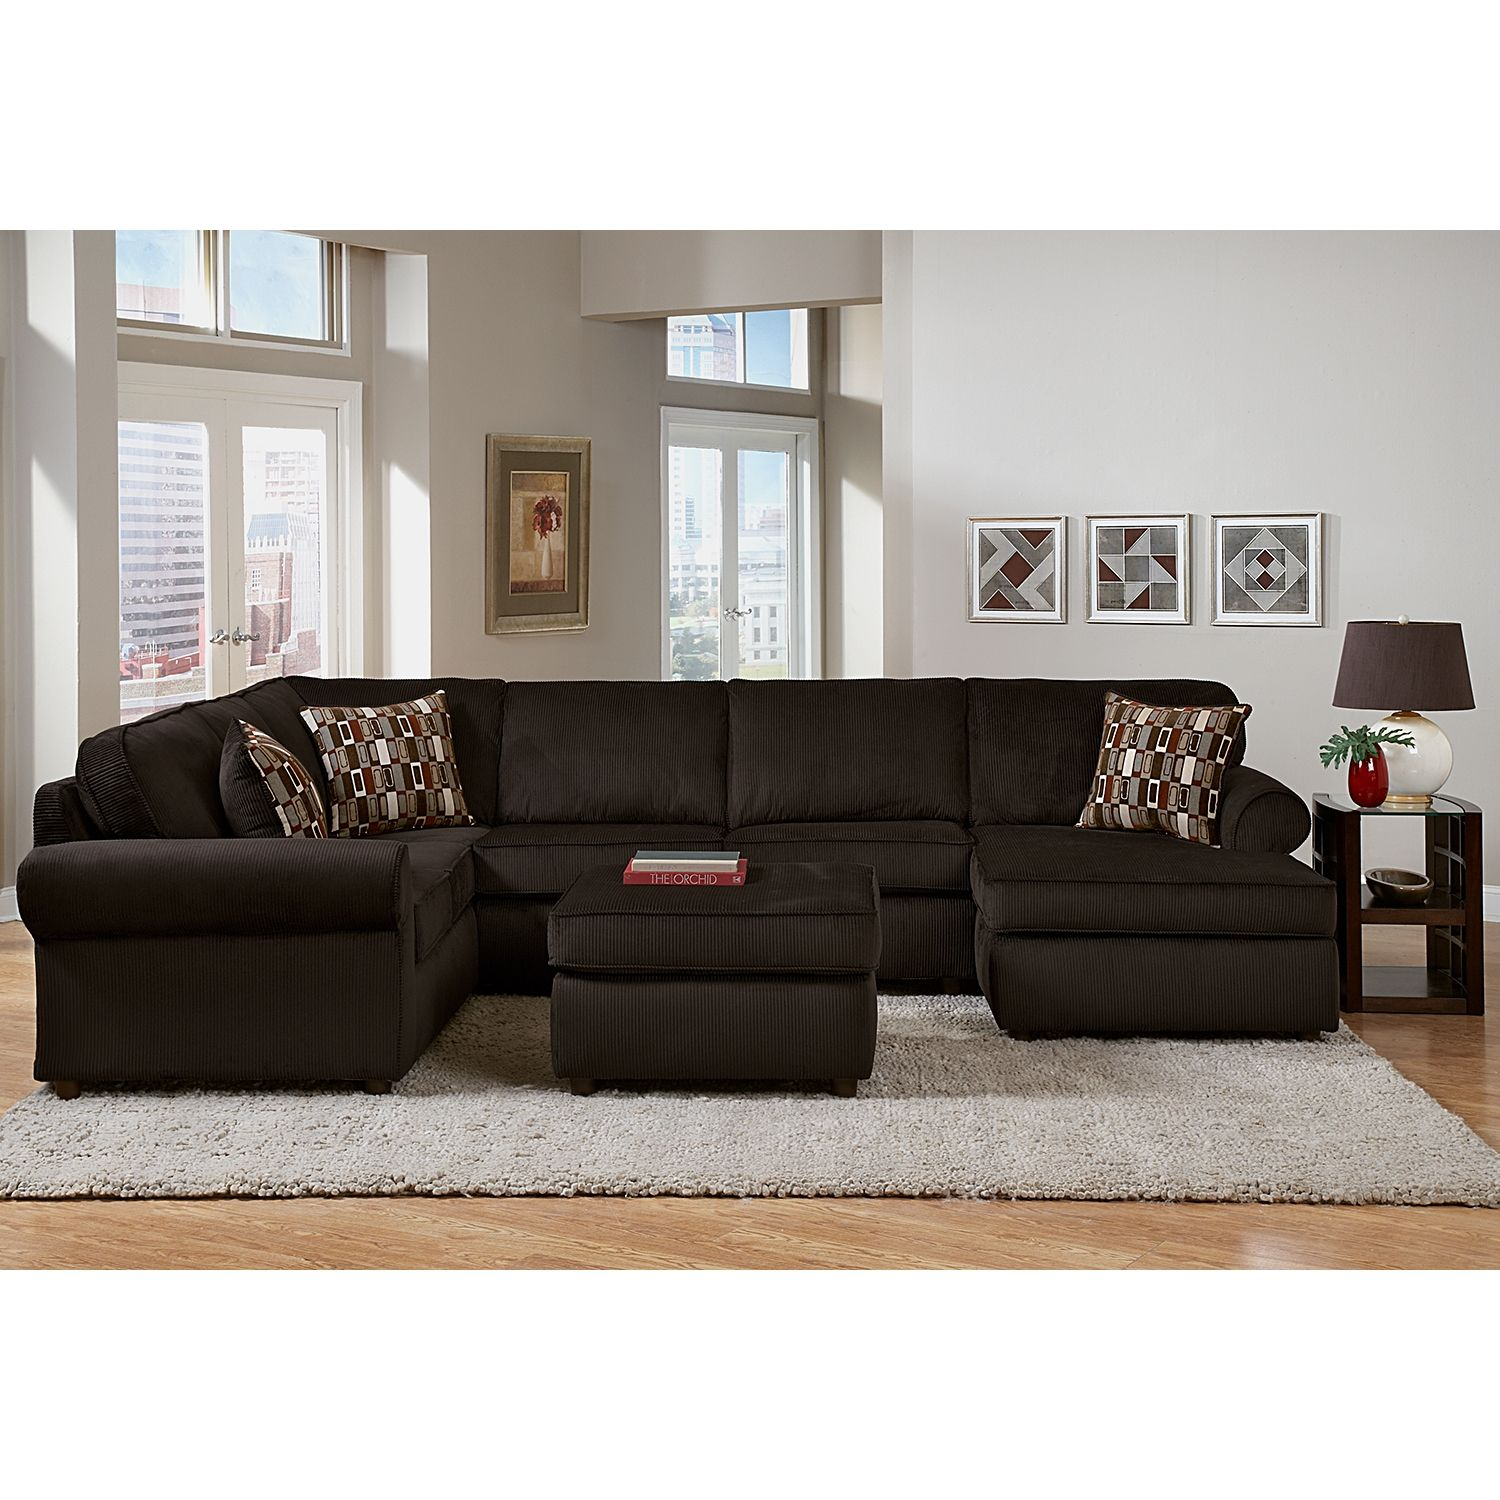 Awesome Value City Furniture Sectionals Ideas